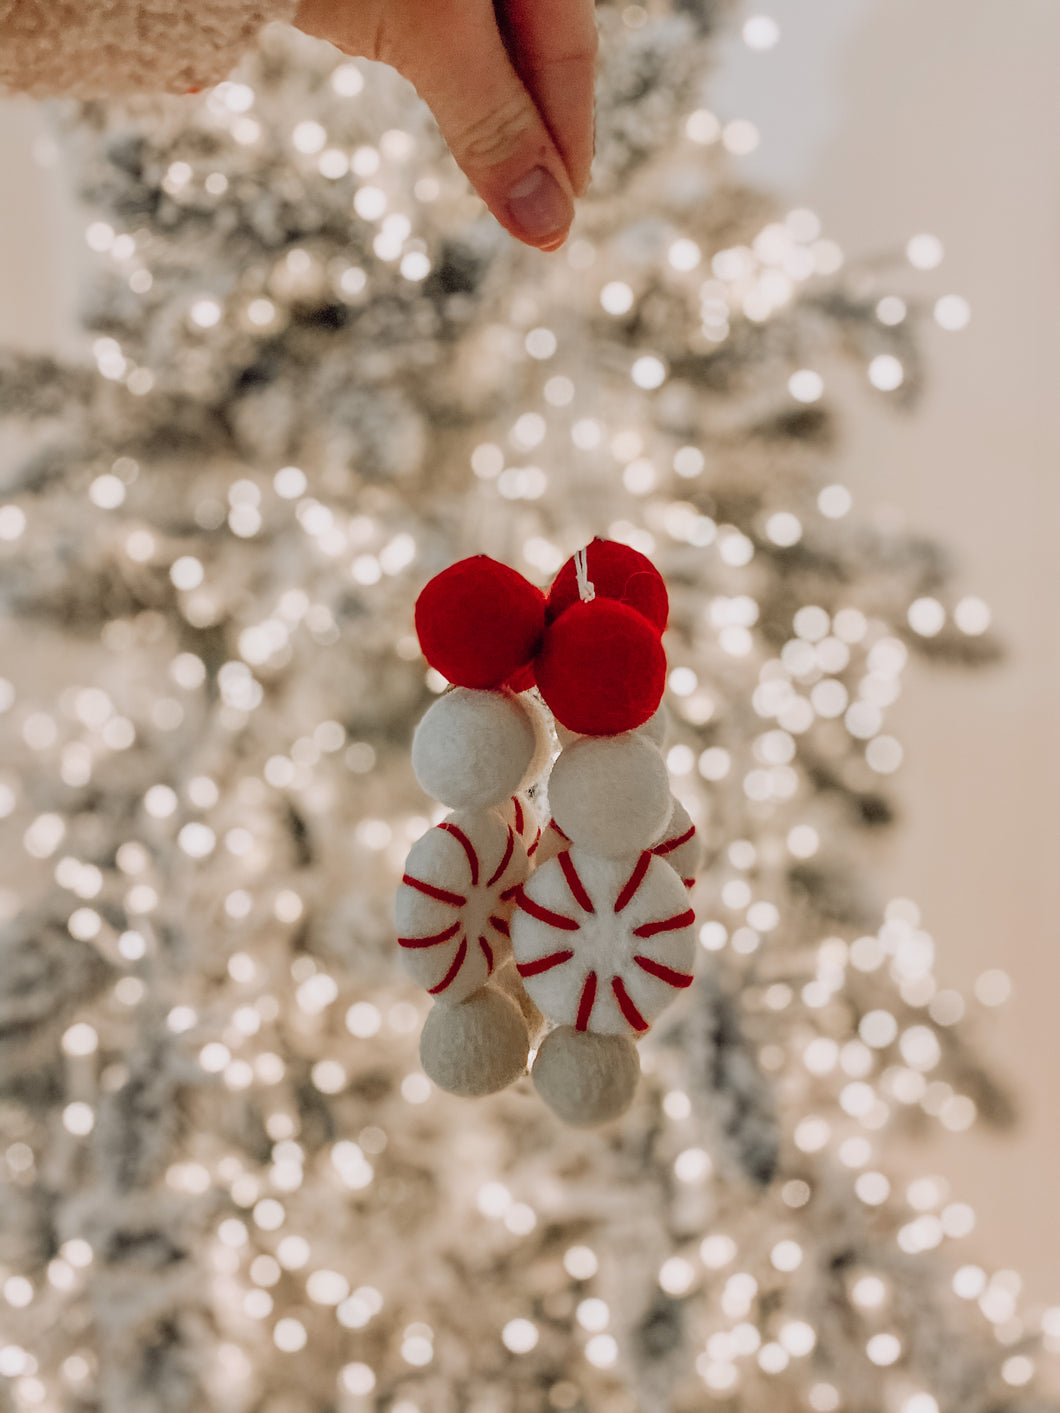 Peppermint Candy Felt Ornament - Beige & White